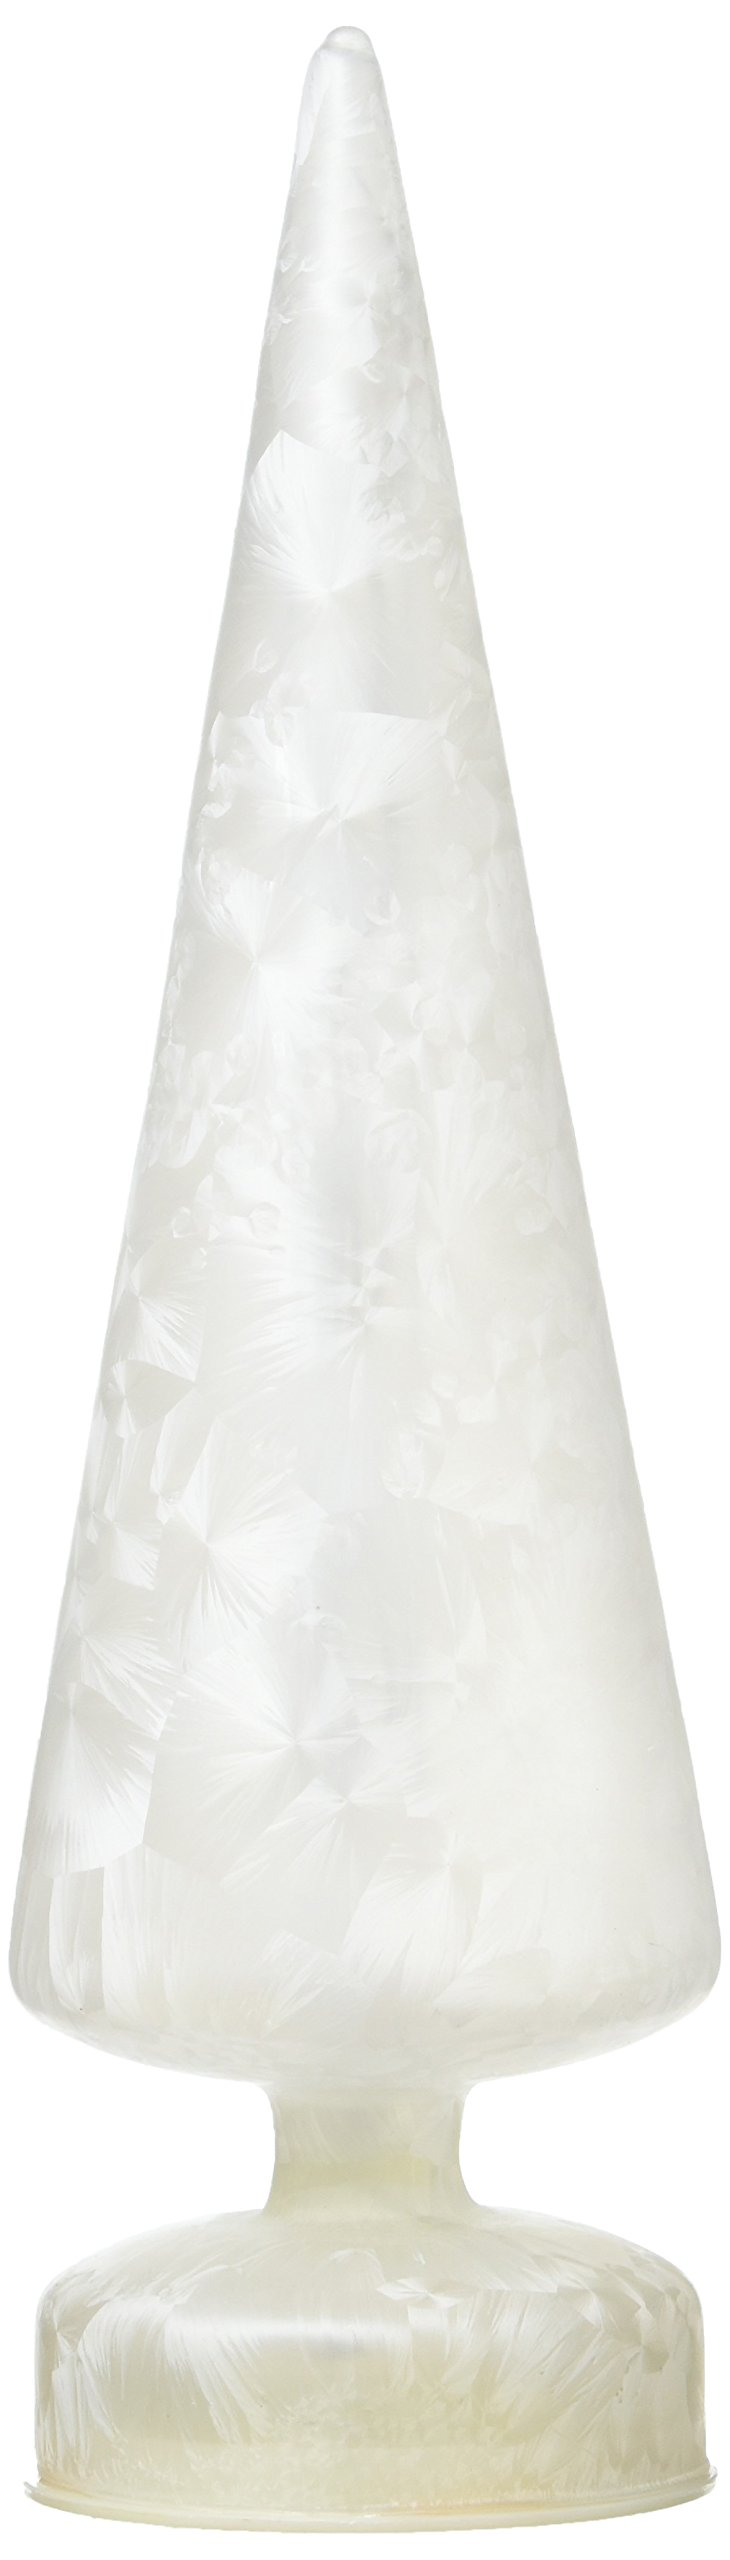 LED Lighted 11-inch Christmas Tree - White